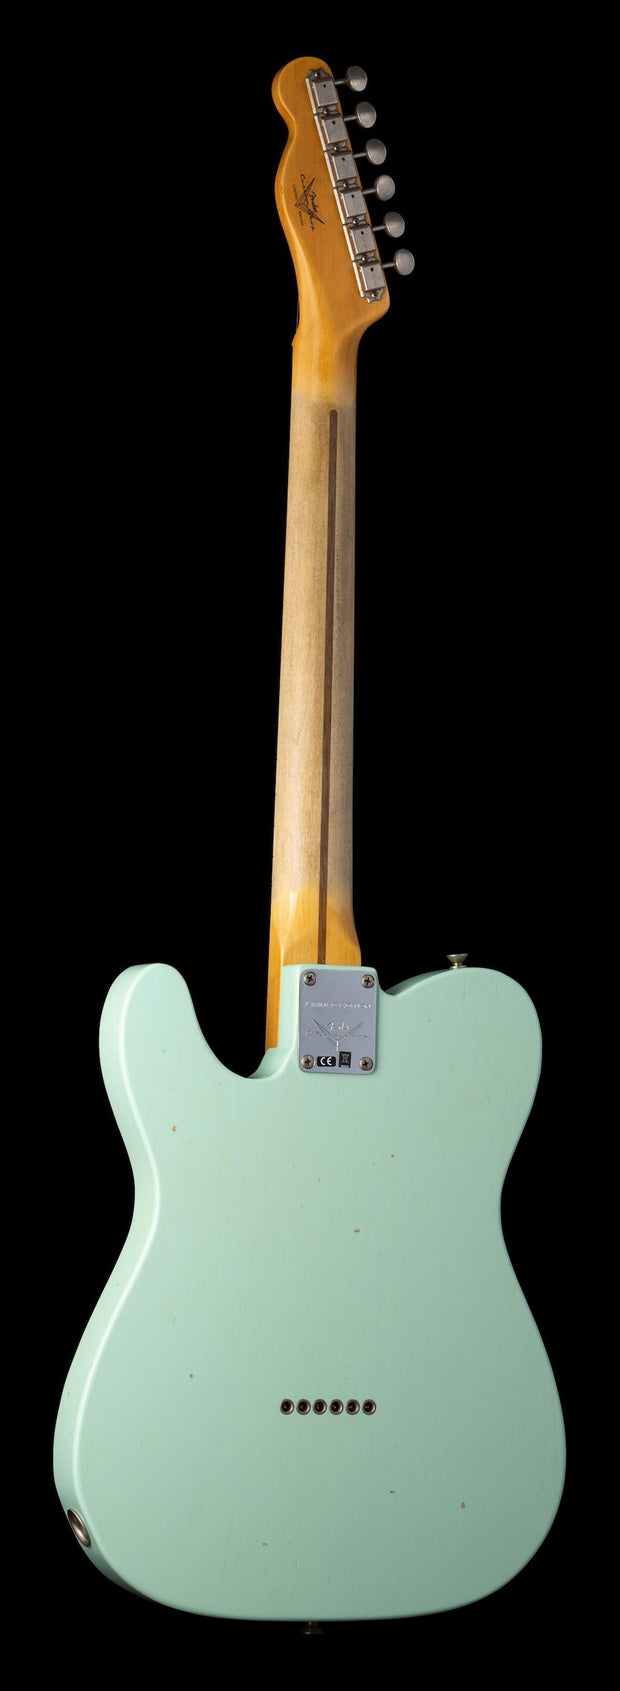 Rear photo of Fender Custom Shop Limited Edition '50s Thinline Telecaster - Super Faded Surf Green, Journeyman Relic